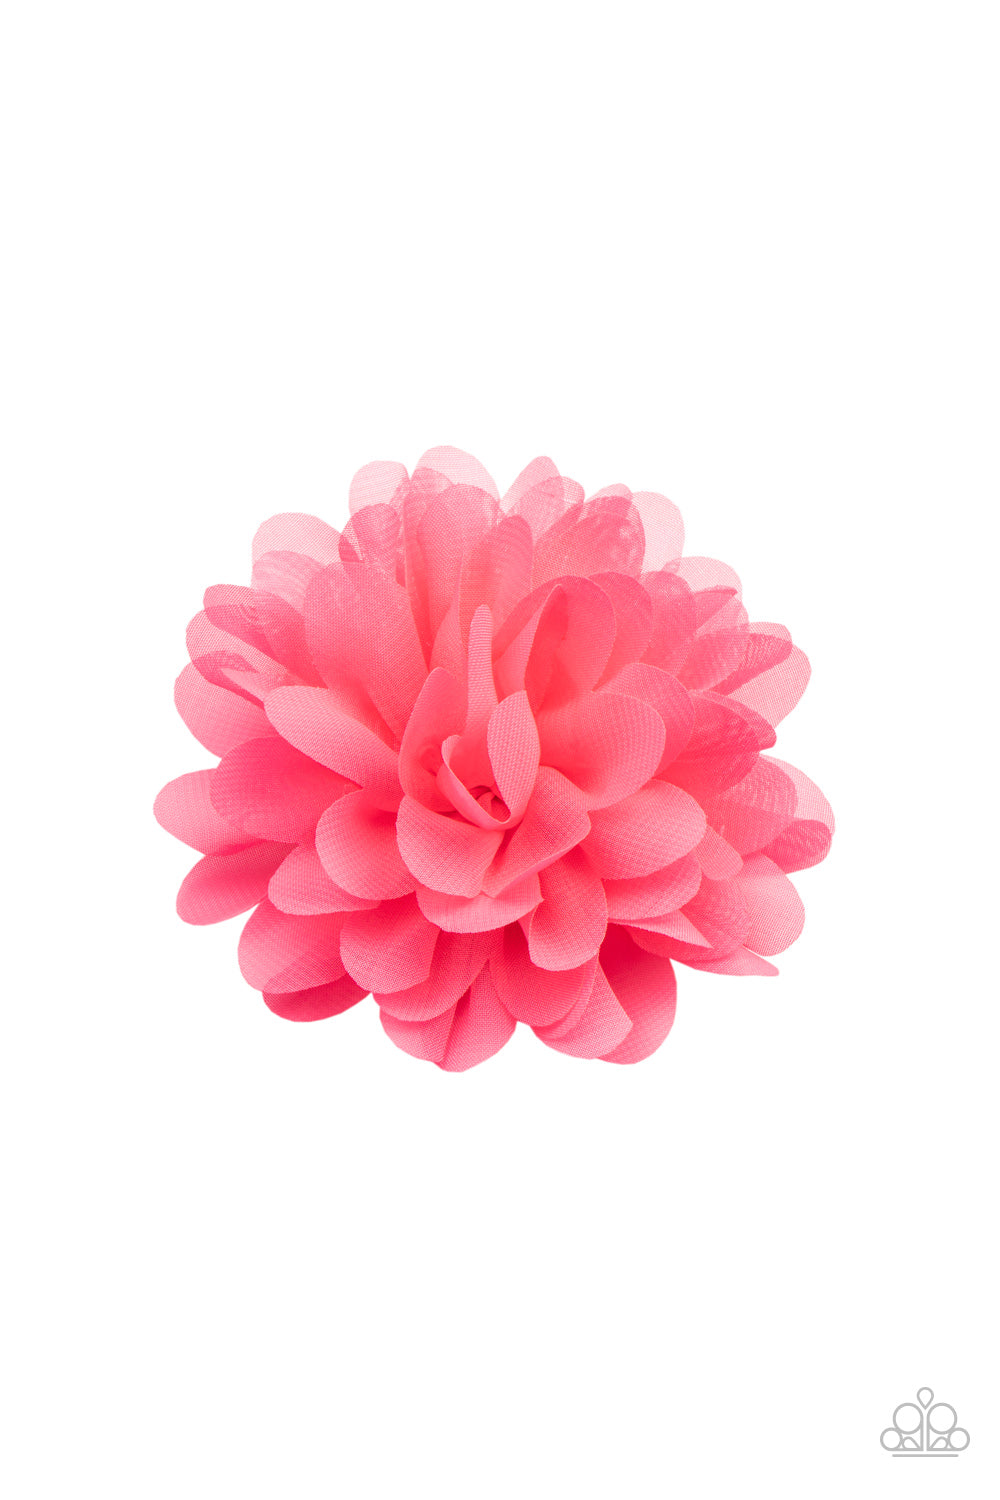 five-dollar-jewelry-blossom-blowout-pink-hair clip-paparazzi-accessories